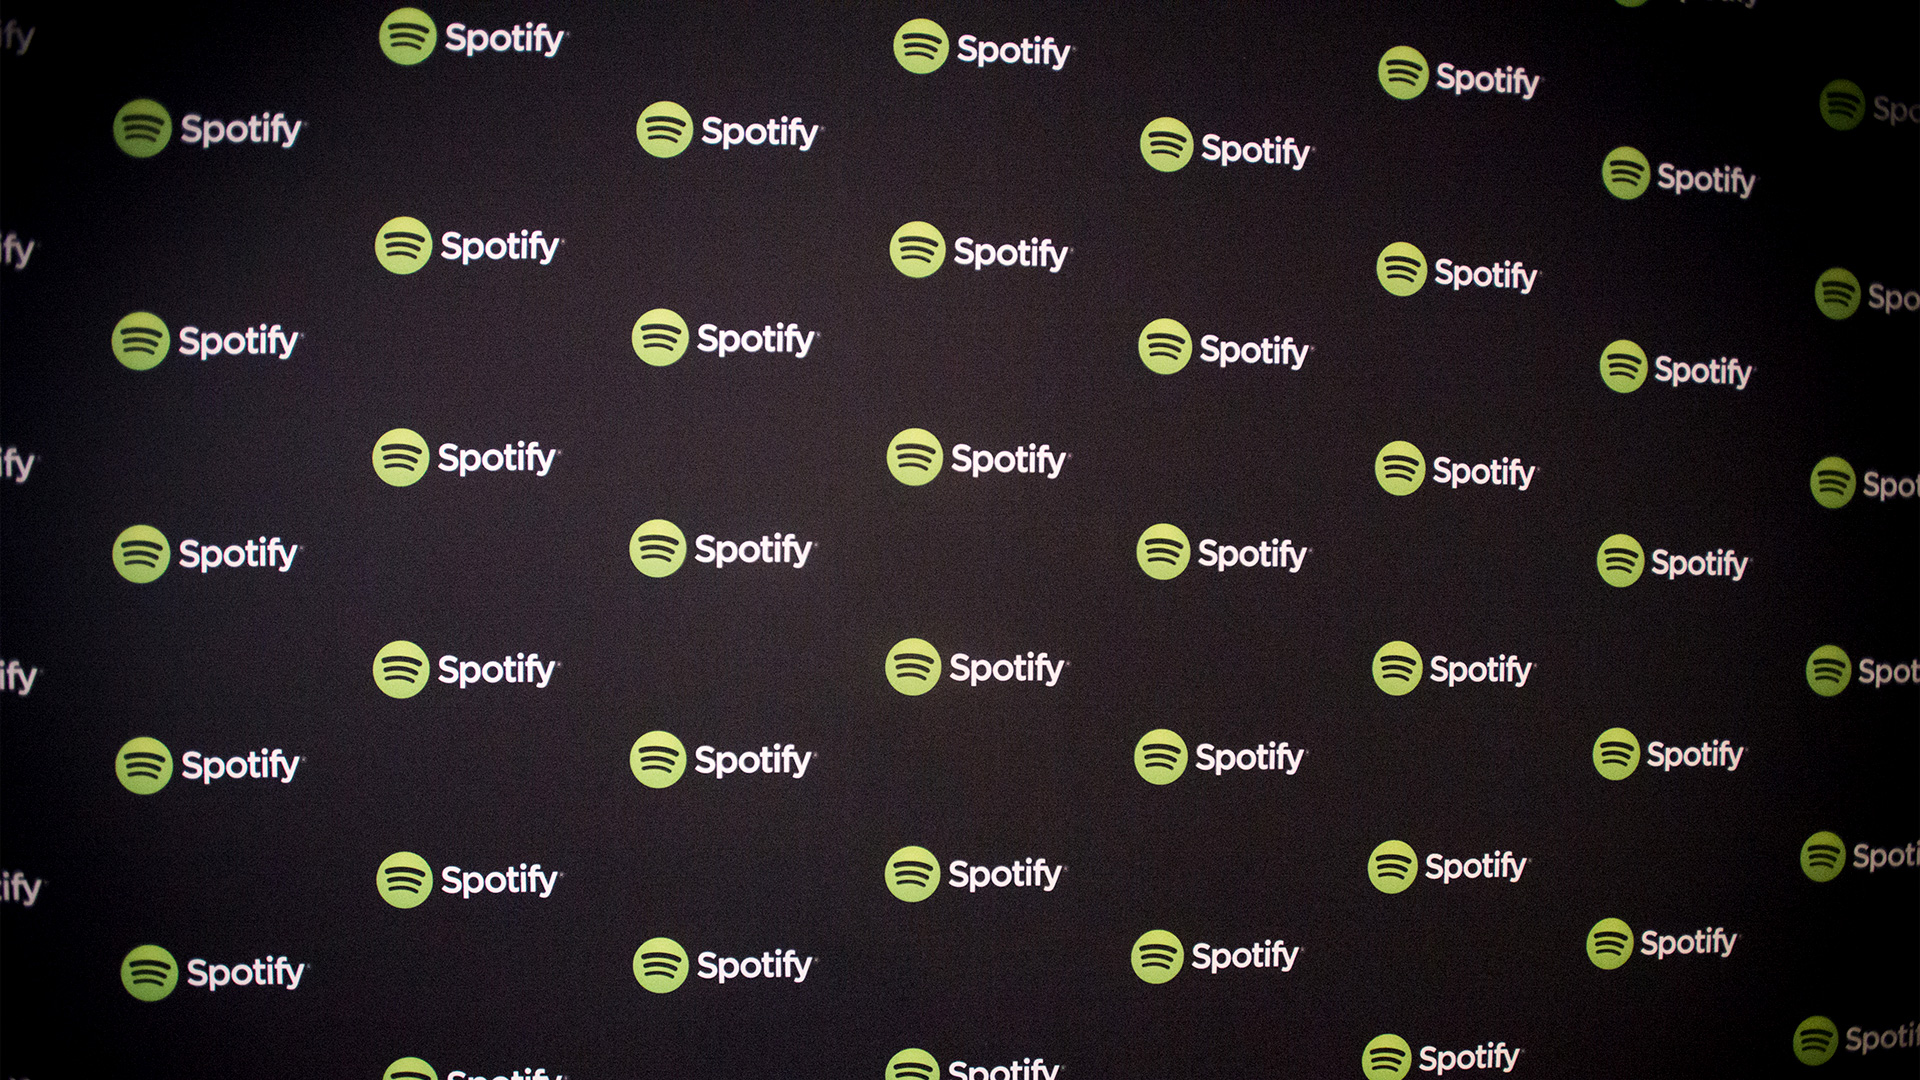 spotify logo backdrop wallpaper 67730